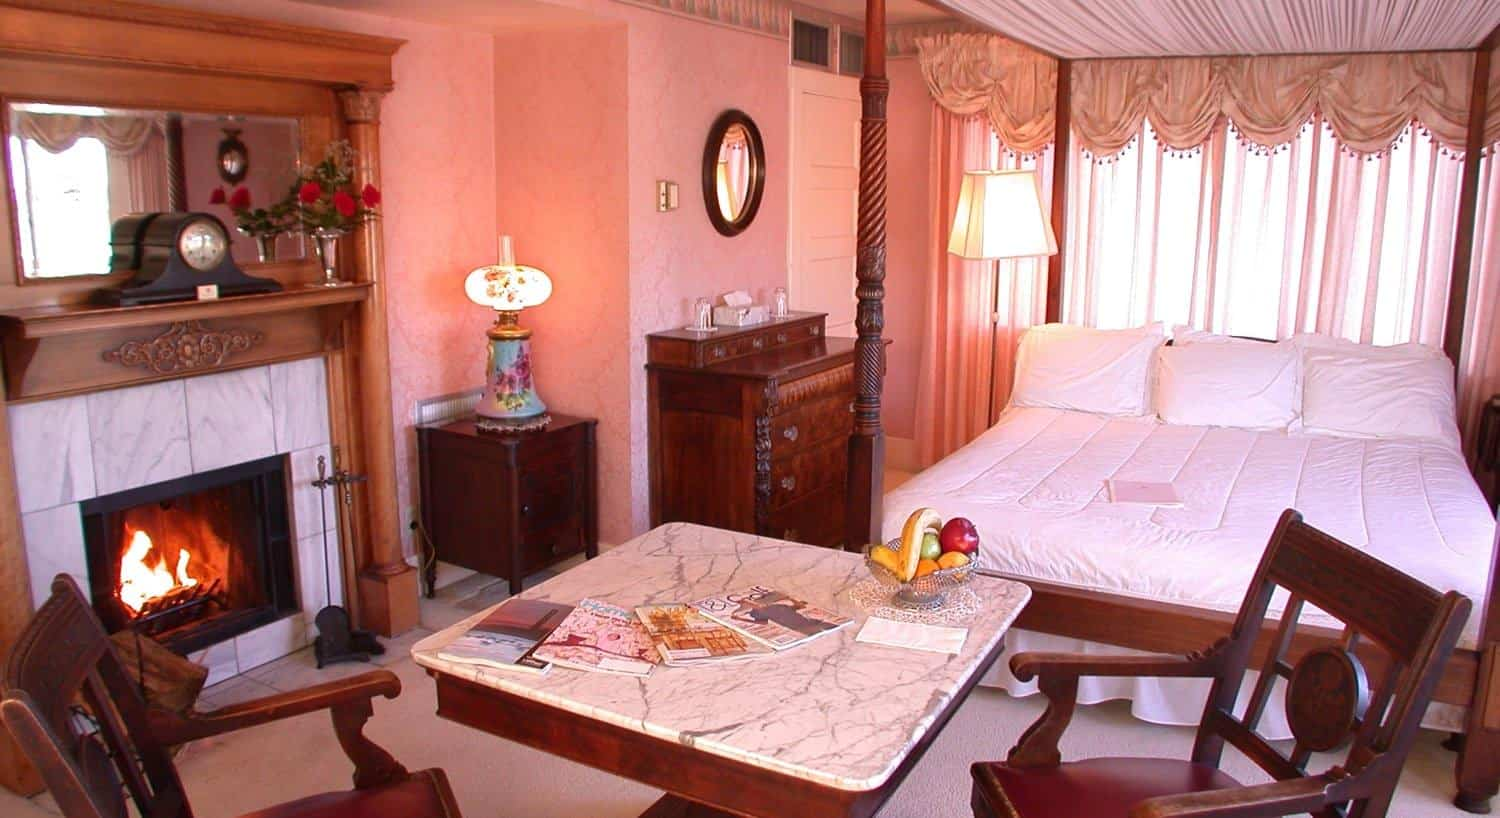 Empire guest room with pink walls, four poster canopy bed, marble-top table with two chairs and fireplace